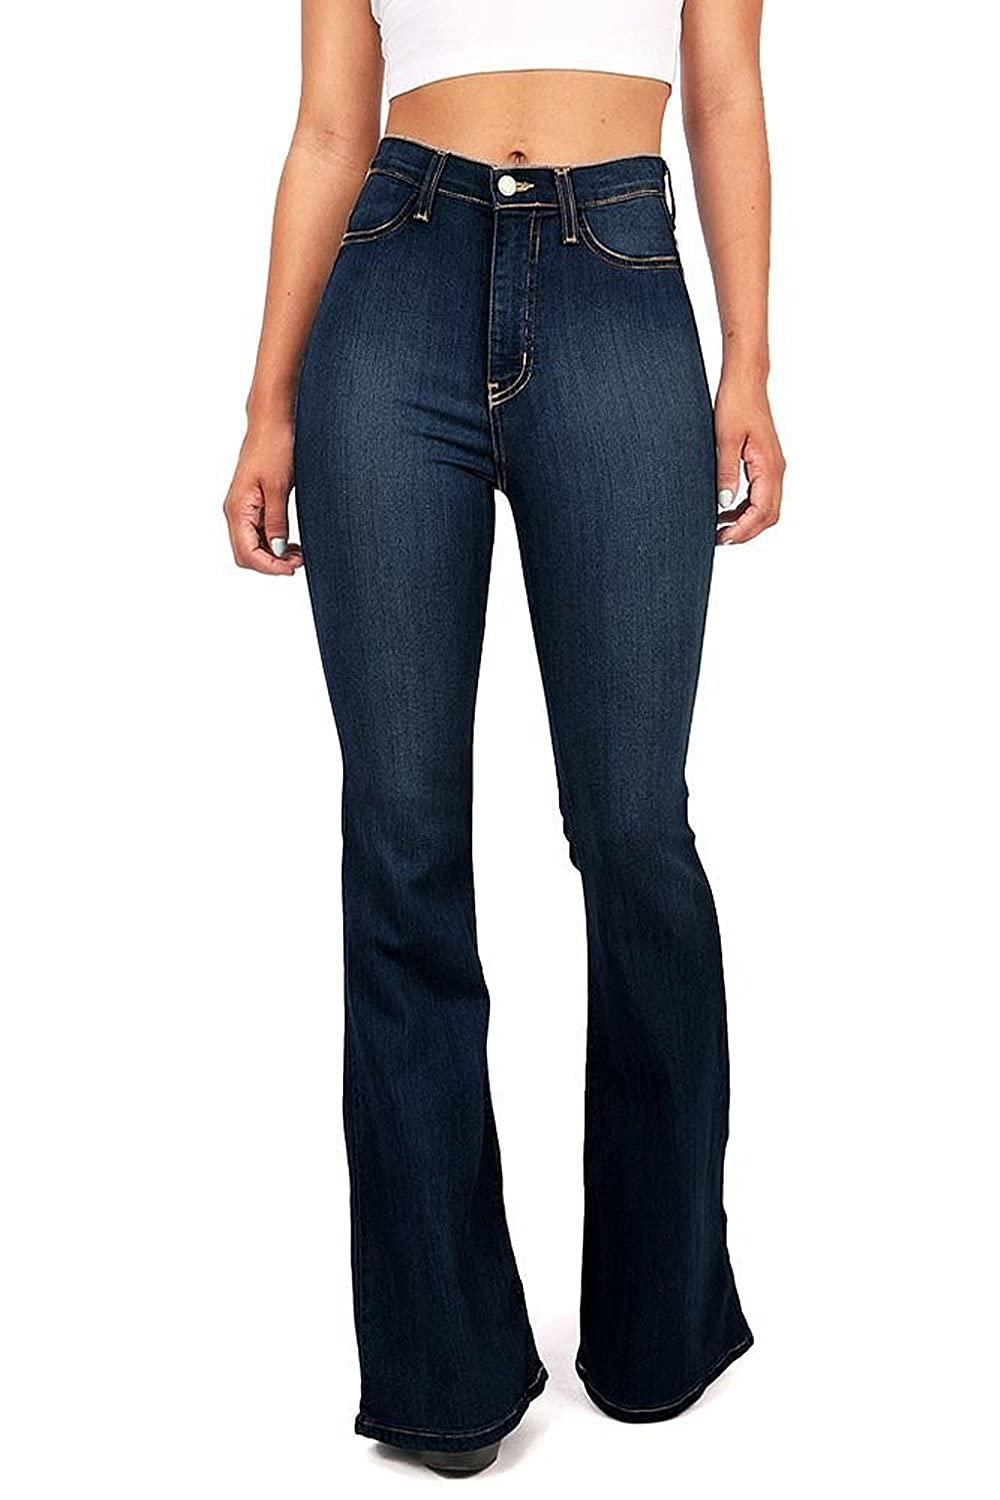 Dark Stone  Flared StyLeUp Women's Premium HighWaist Denim Skinny & Flared Jeans